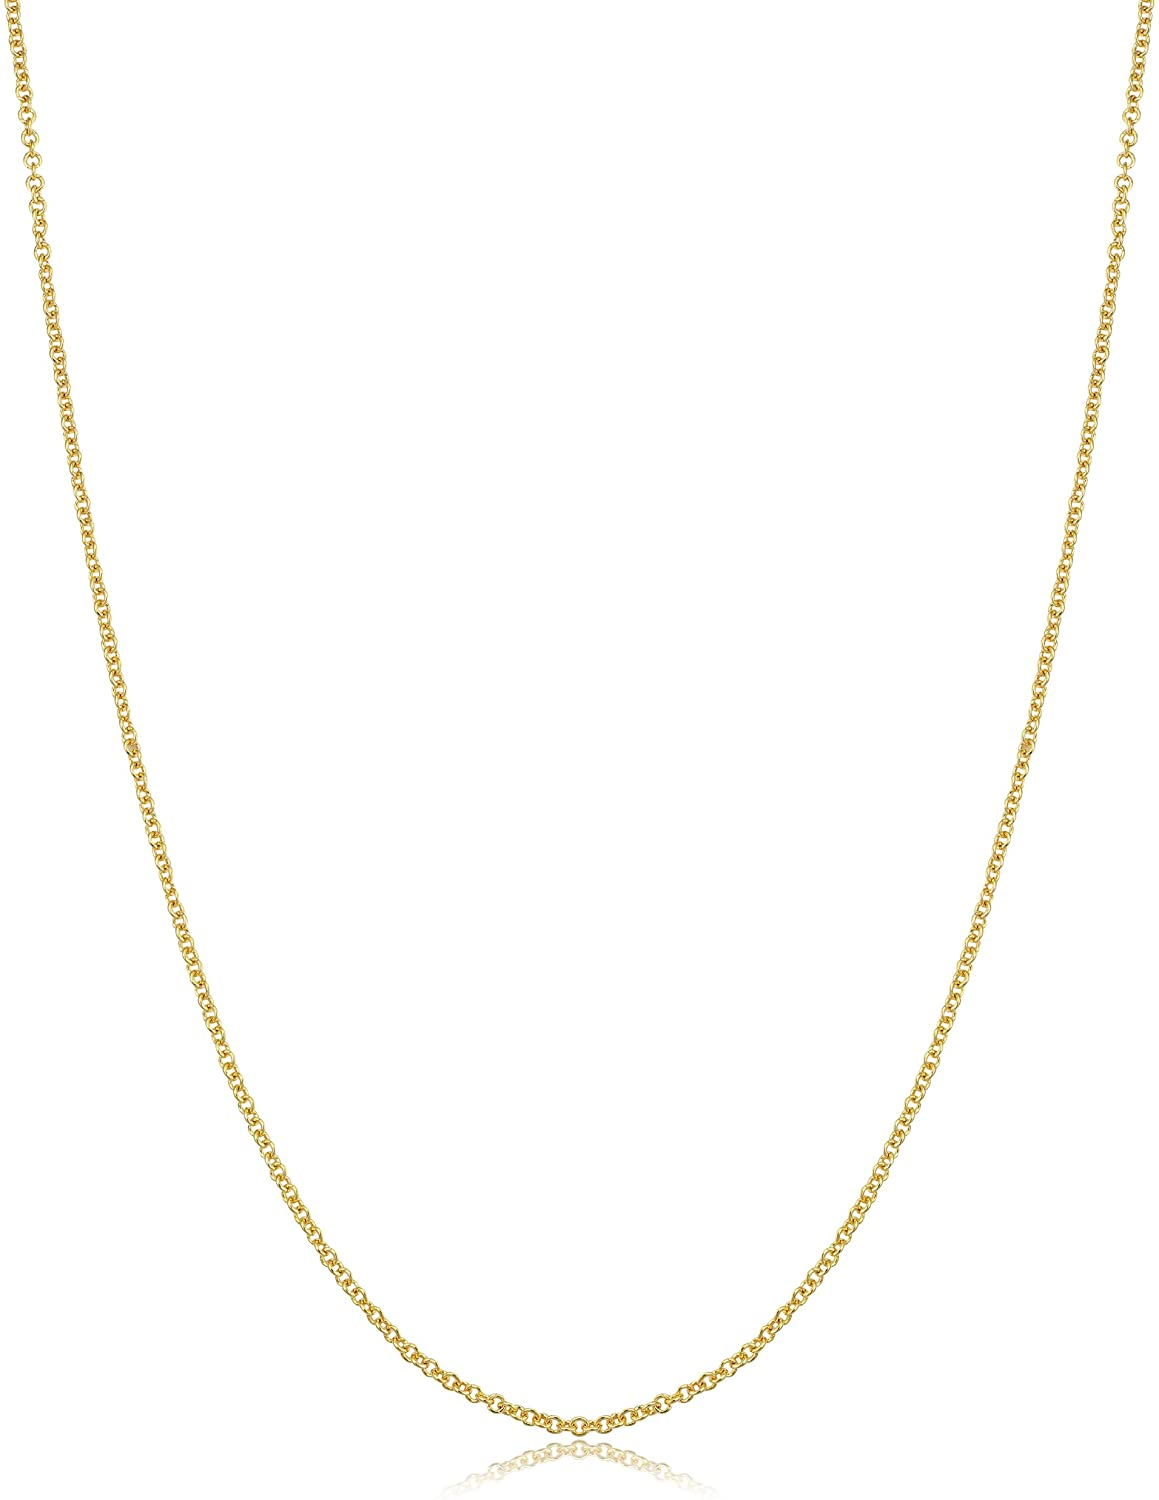 14k Yellow Gold Filled or White Gold Filled 1 mm, 1.3 mm, 1.5 mm or 2.1 mm Cable Pendant Chain Necklace